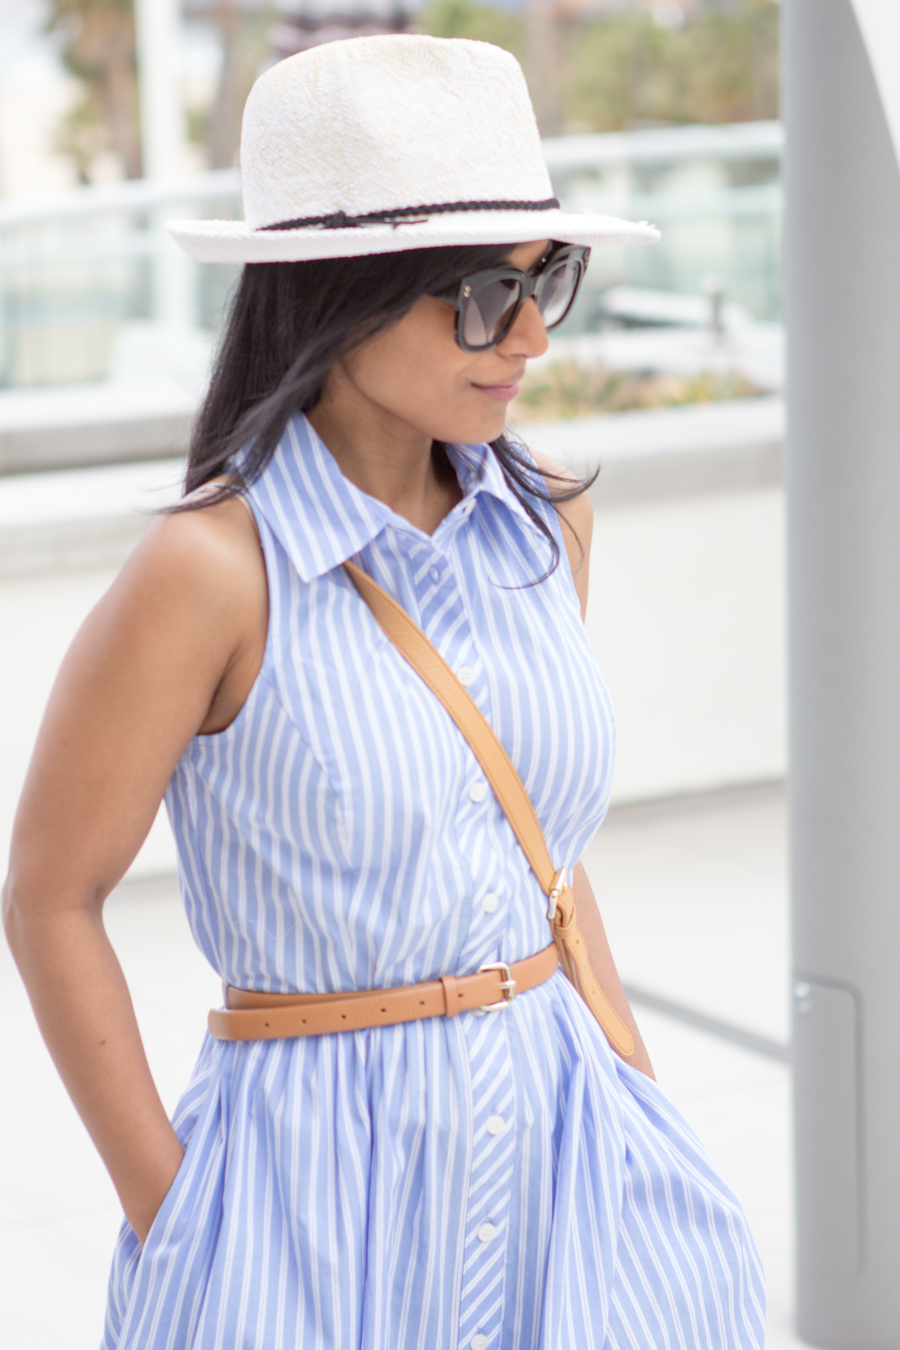 vacation wear, holiday dressing, poolside with cocktails, relaxed dressing, chic dress, belted dress, shirtdress, panama hat, express runway, pearl earrings, stella mccartney, square sunglasses, relaxing by the poo